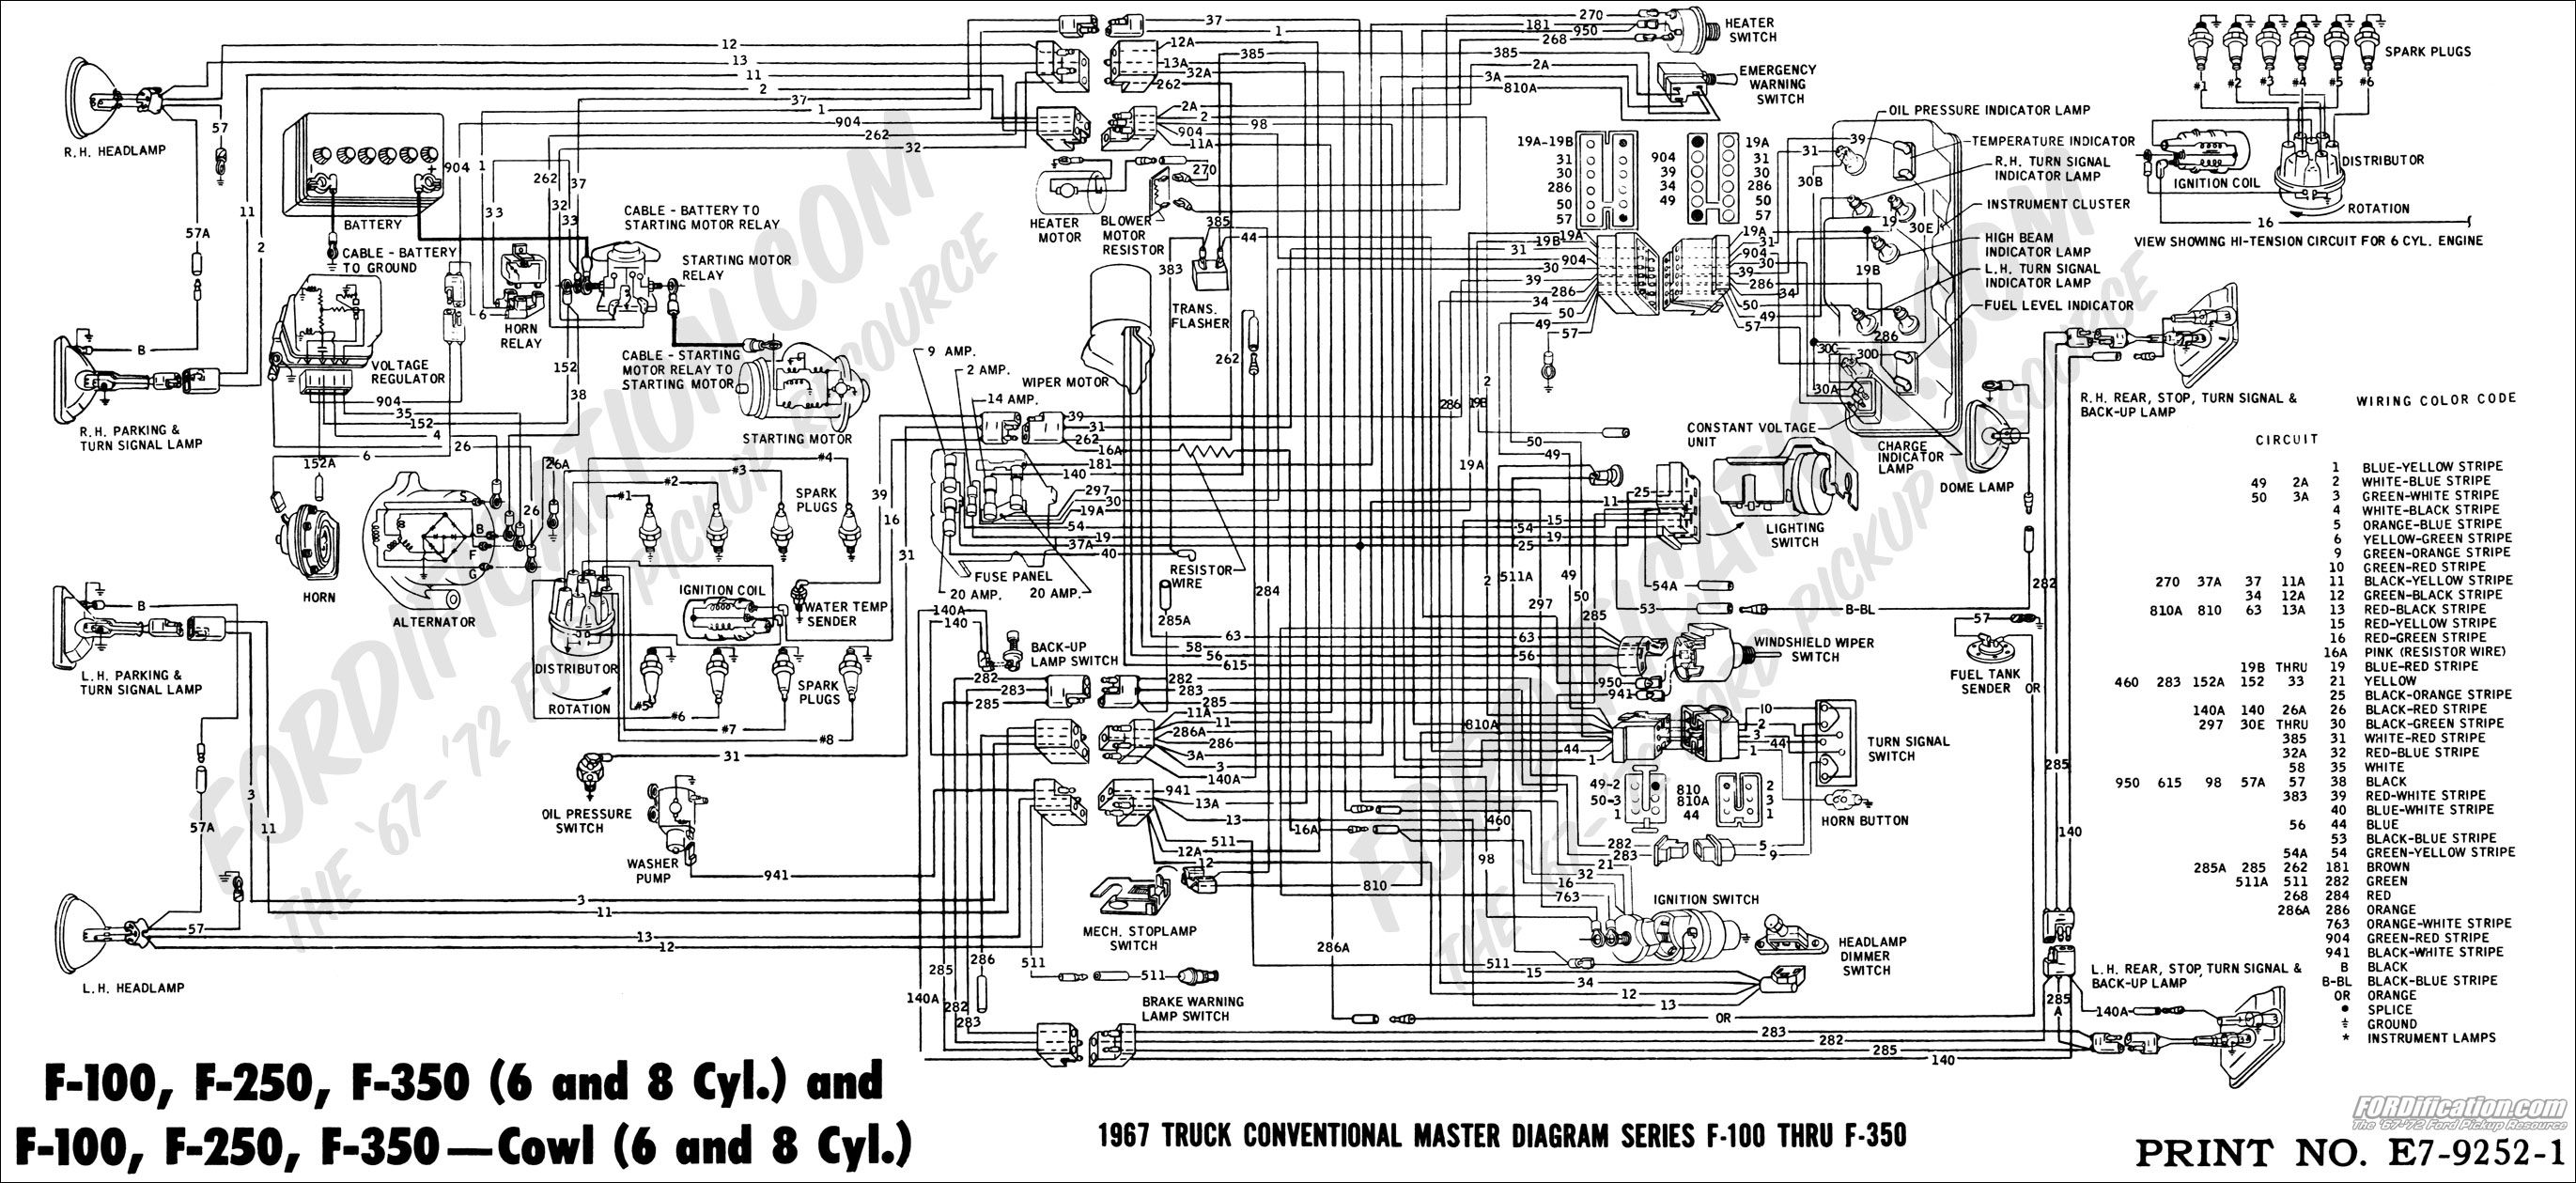 8e608320d8e6c71ff5bbdb2efdd7ada1 ford truck technical drawings and schematics section h wiring wiring diagram for truck to trailer at n-0.co